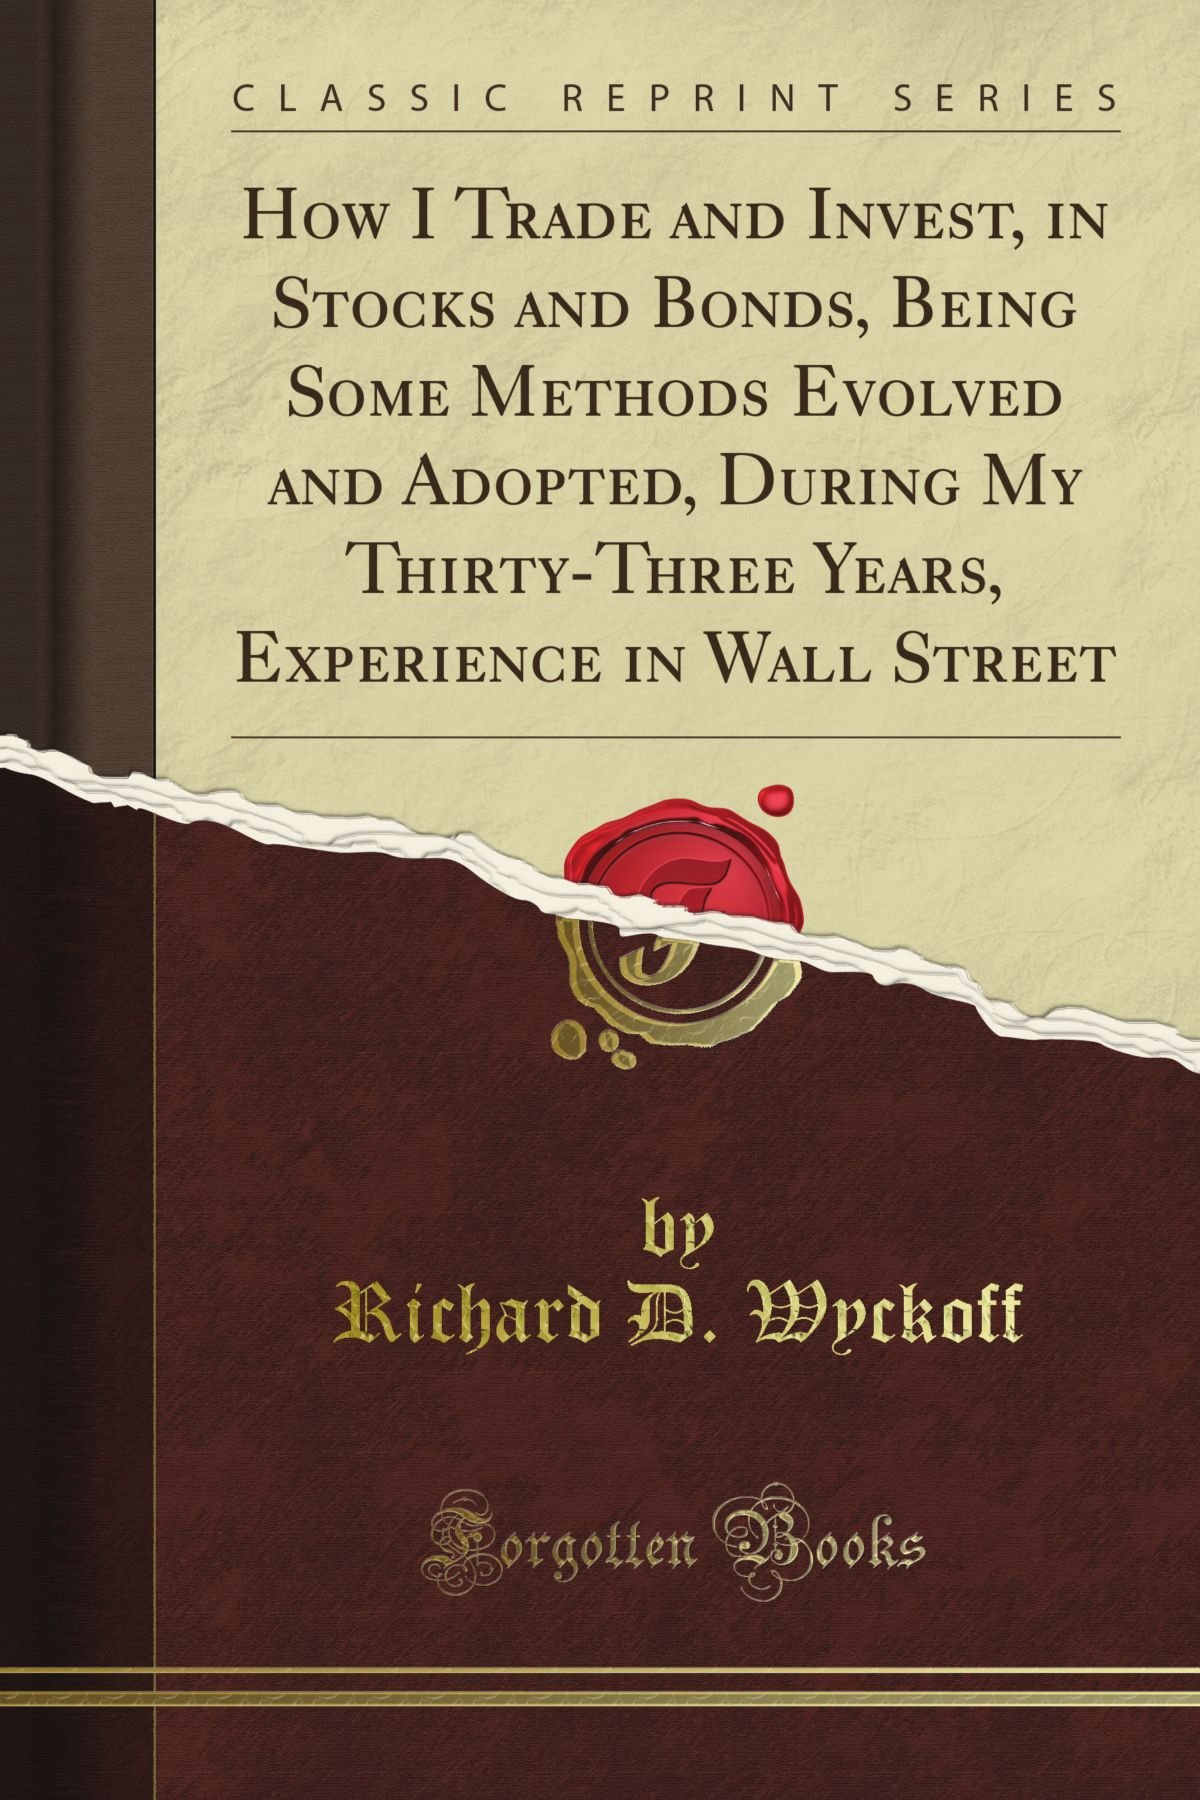 How I Trade and Invest, in Stocks and Bonds, Being Some Methods Evolved and Adopted, During My Thirty-Three Years, Experience in Wall Street (Classic Reprint) by Forgotten Books